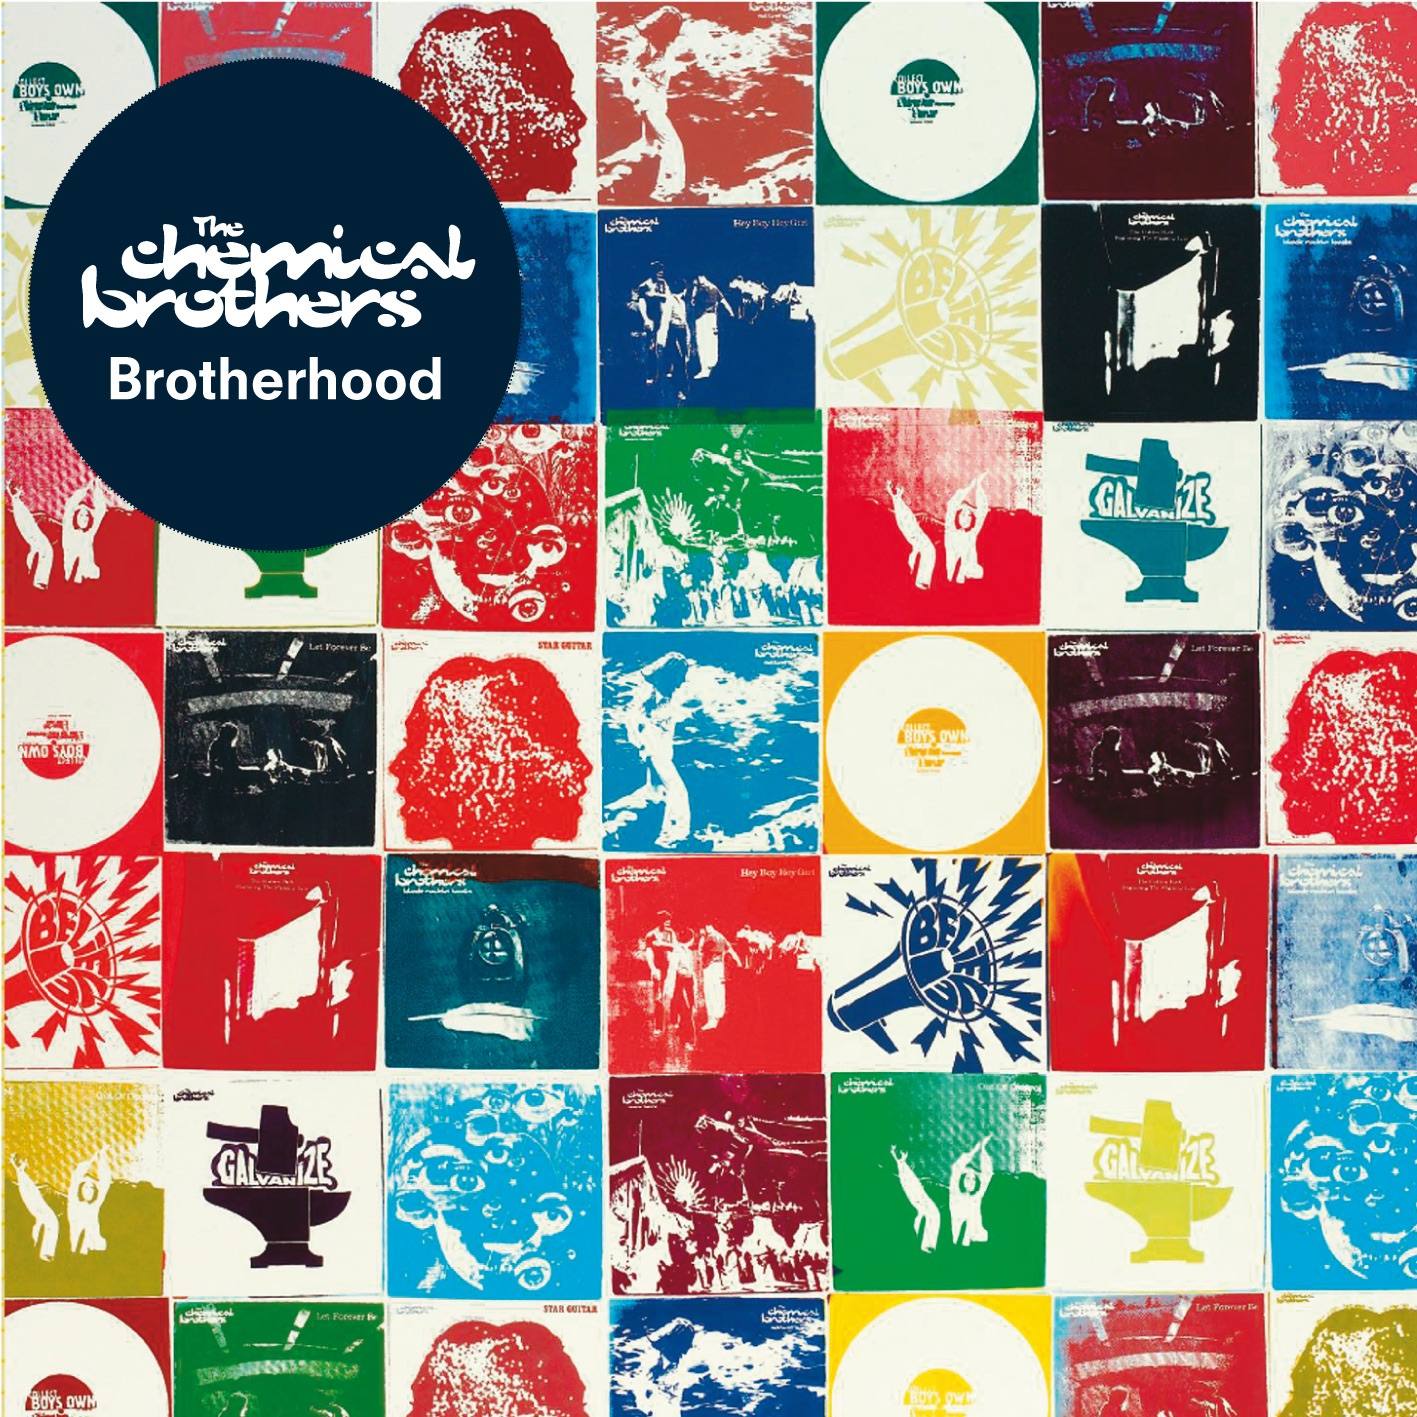 Chemical Beats by The Chemical Brothers